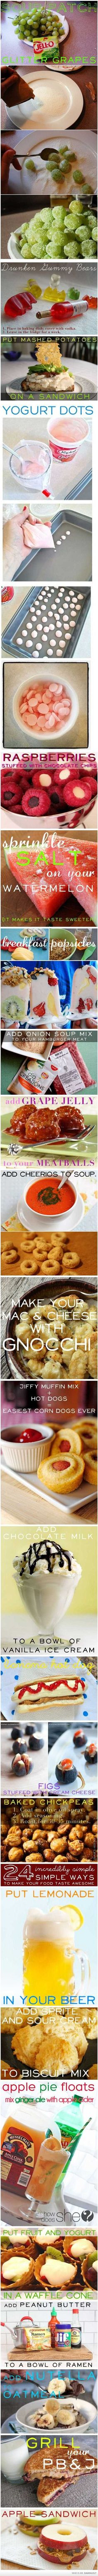 fun food ideas